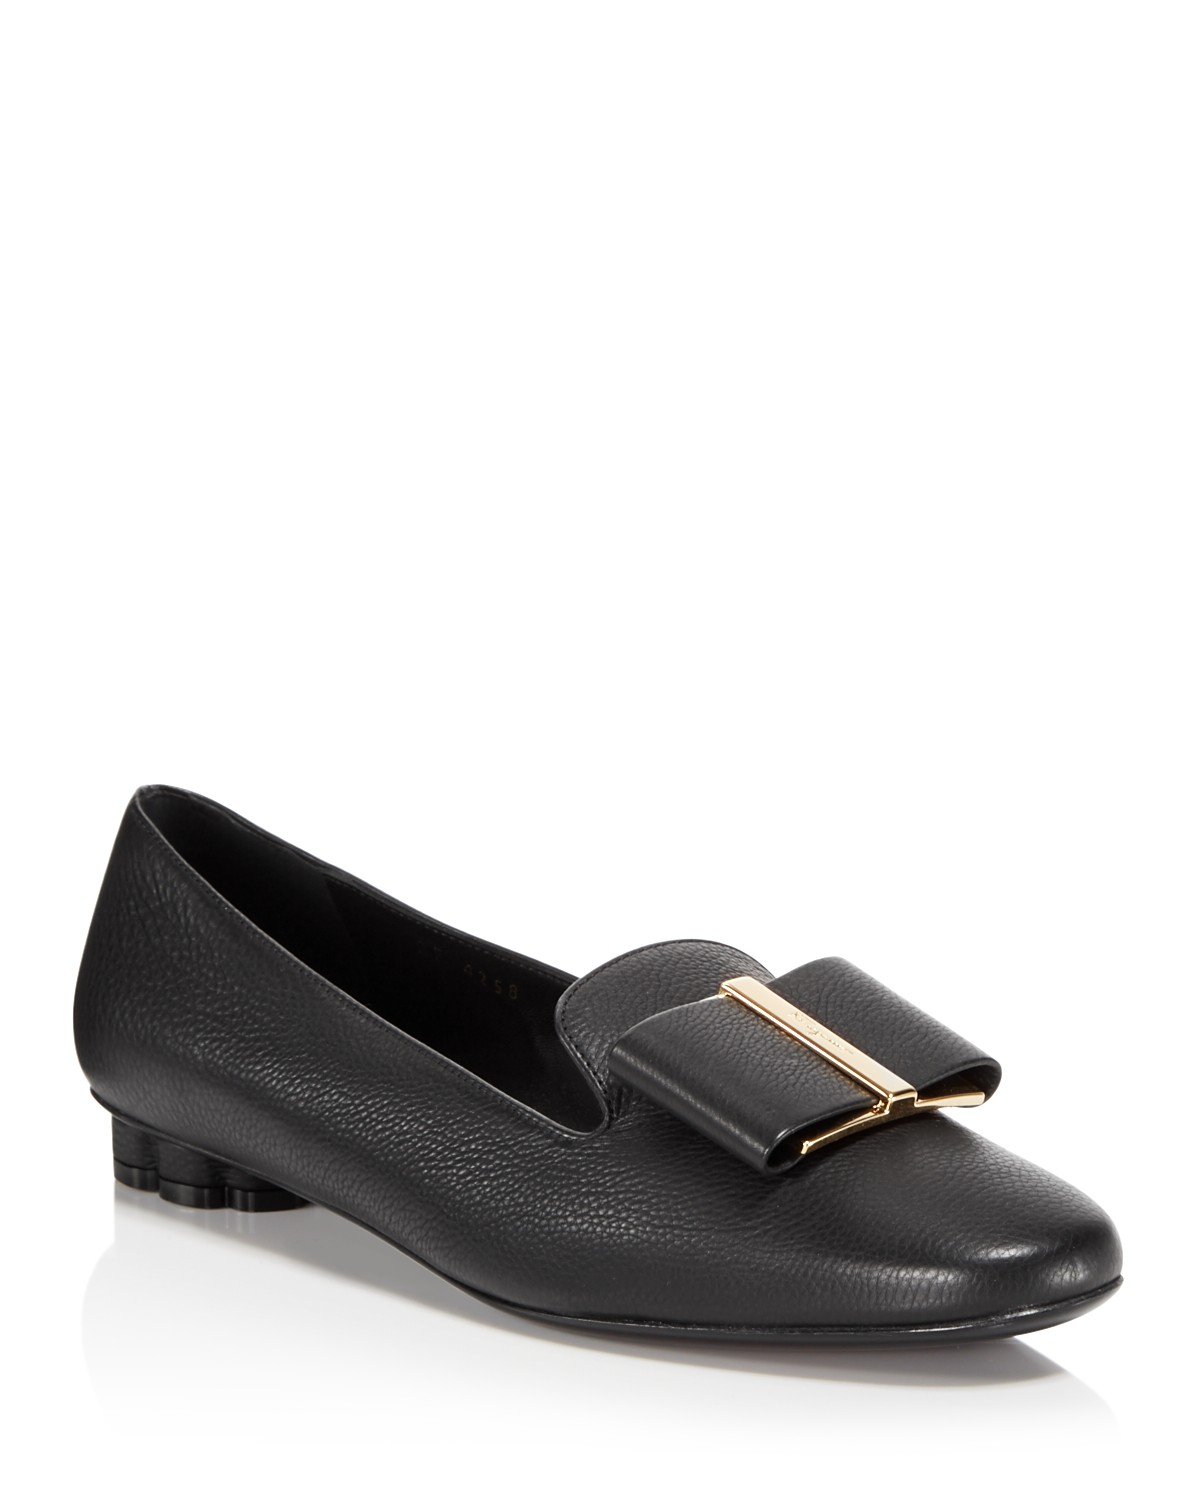 Salvatore Ferragamo Women's Bow Detail Leather Loafers 142sroN